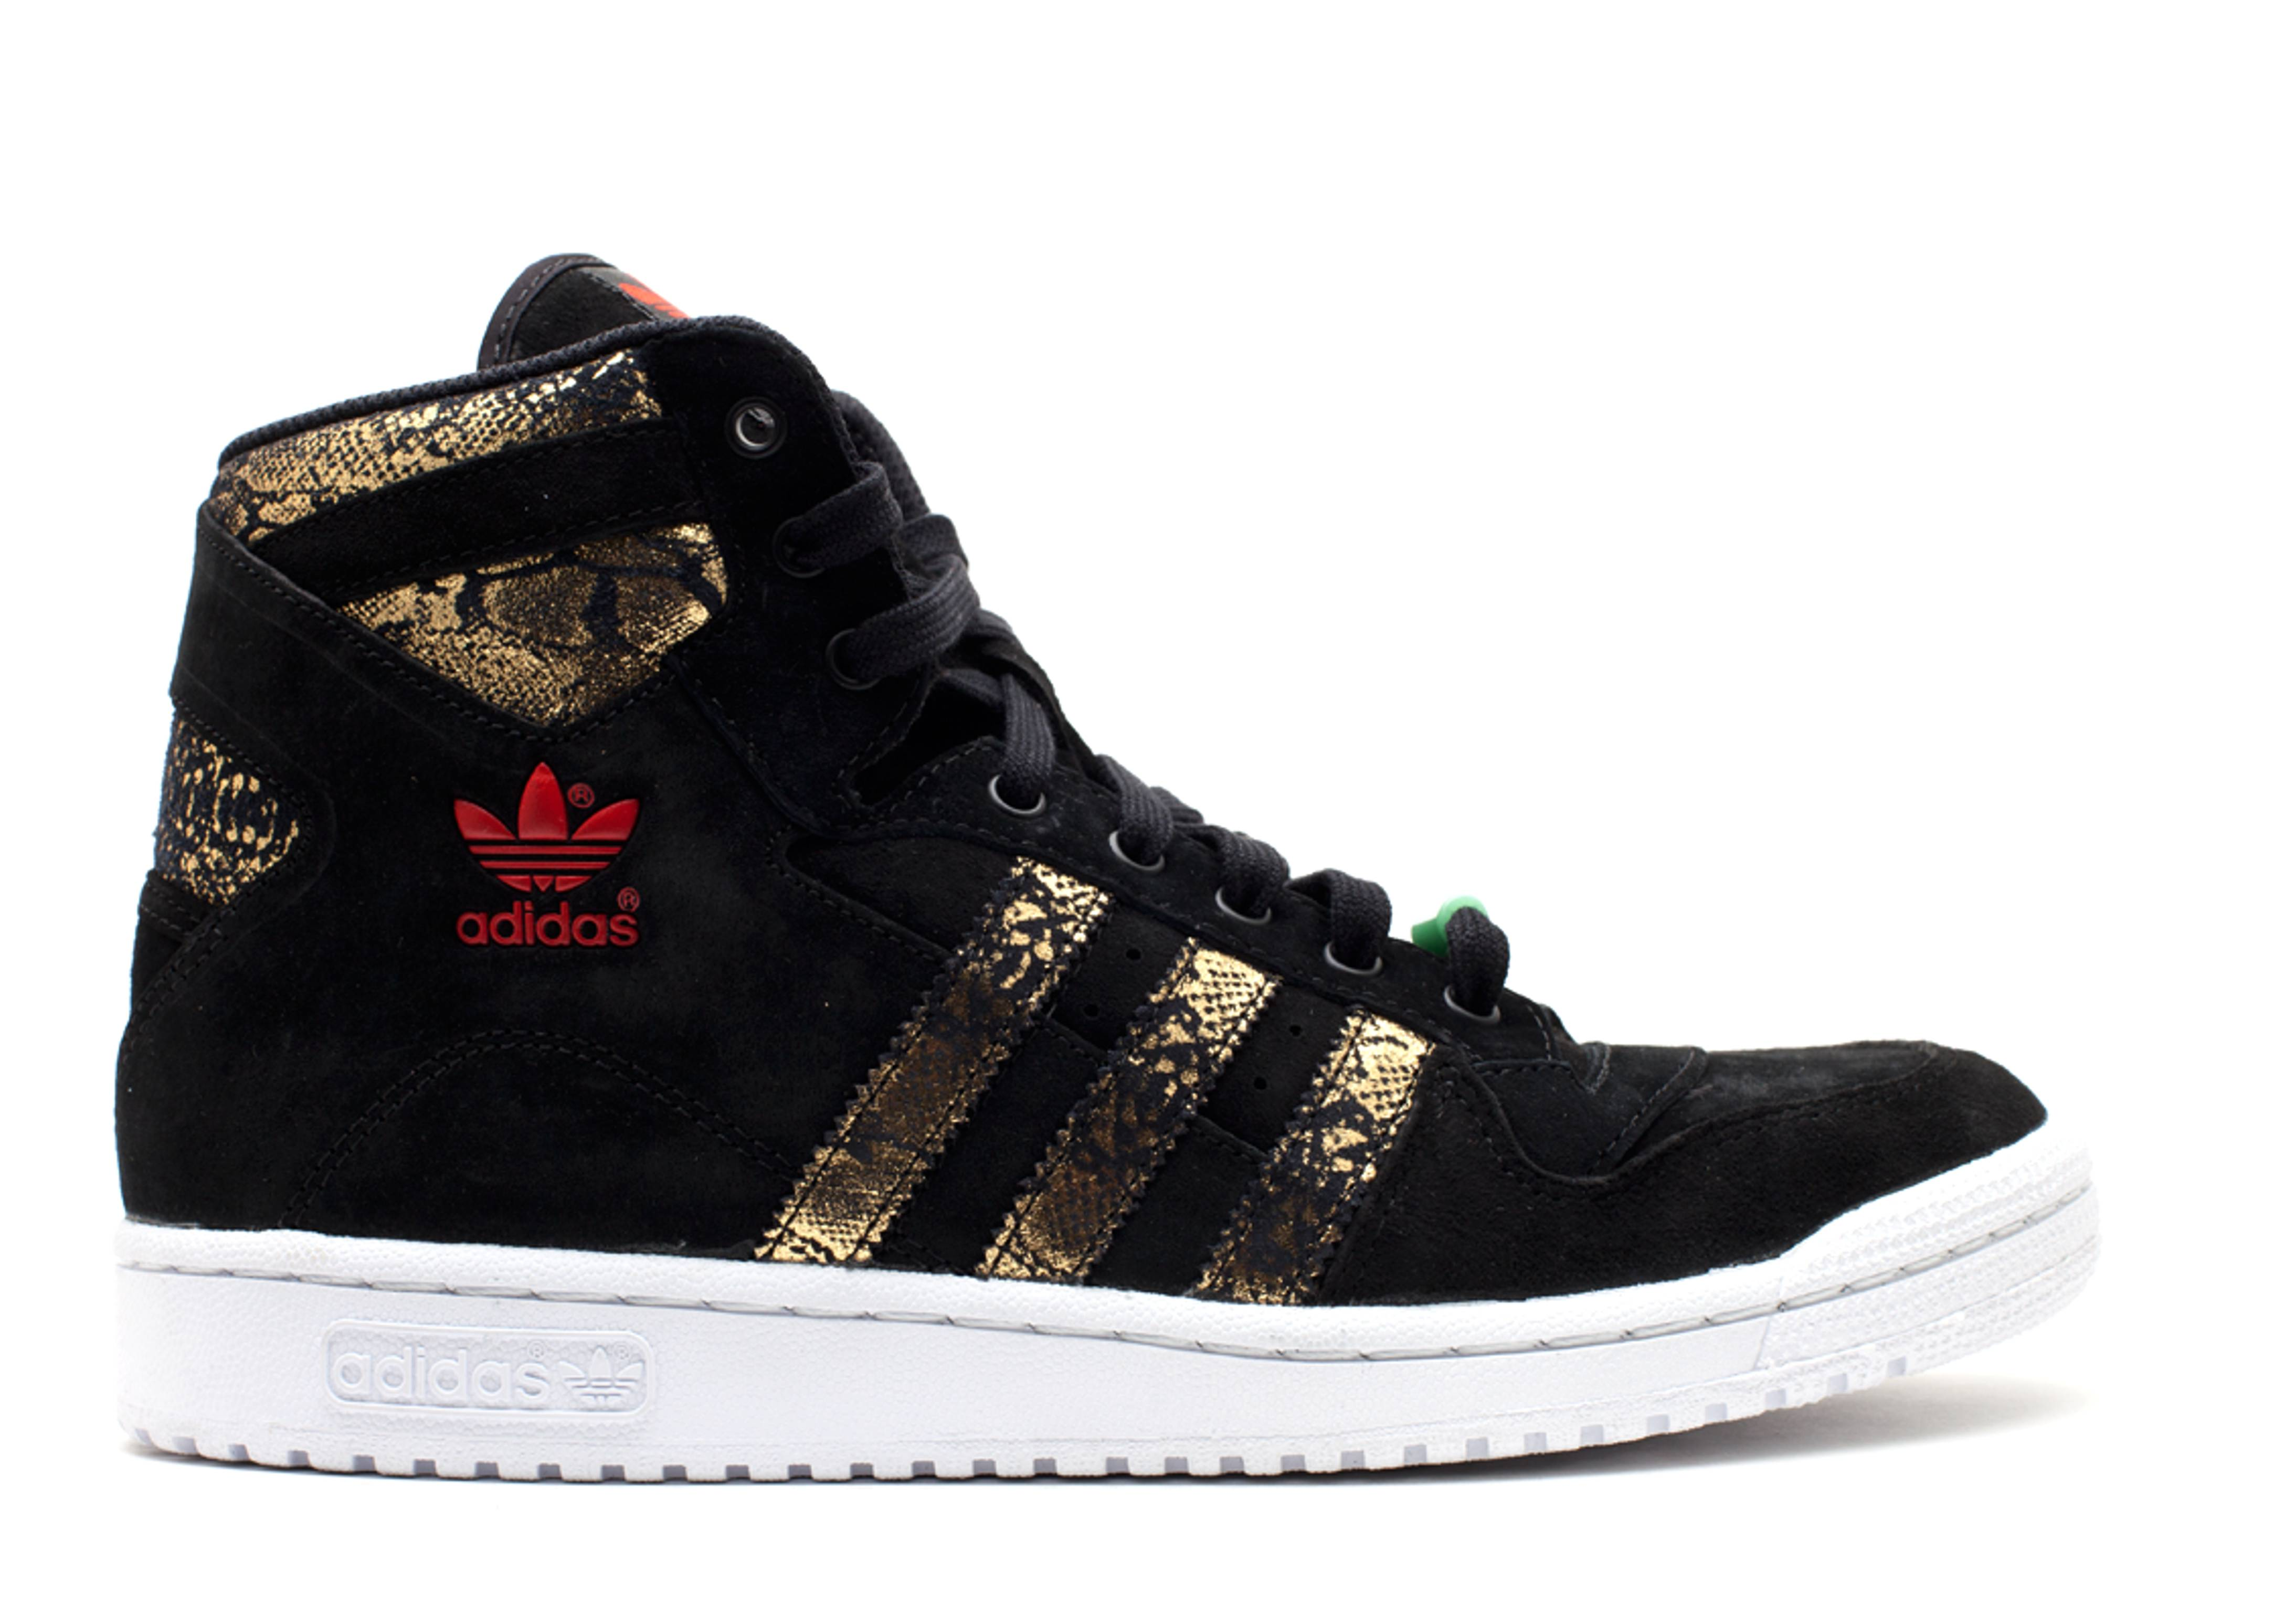 """decade og mid cny """"year of the snake"""""""